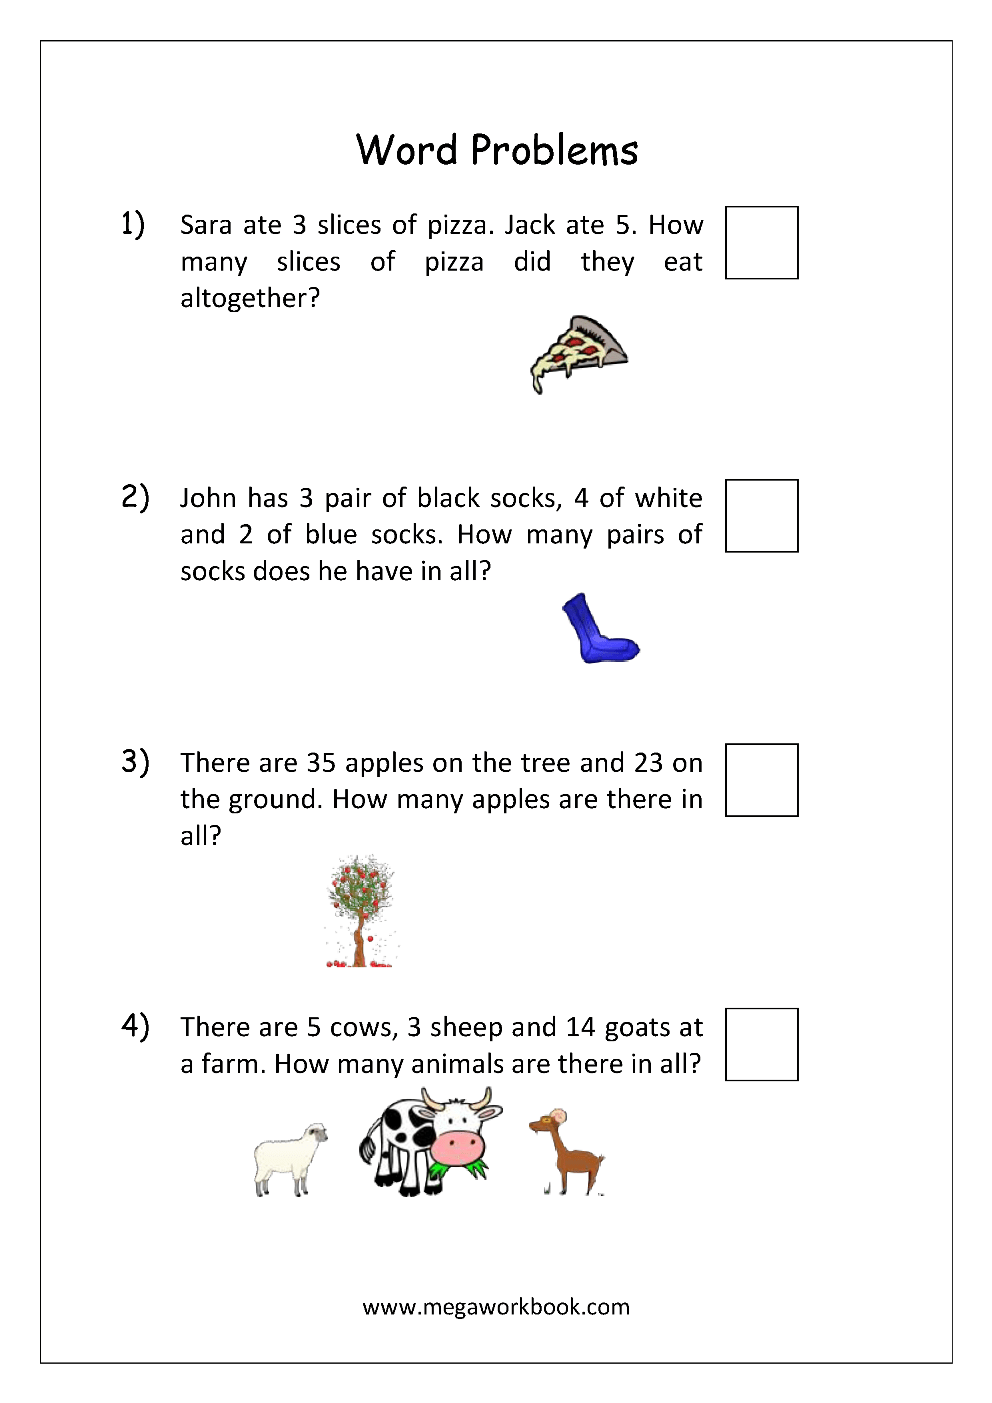 medium resolution of Addition and Subtraction Word Problems Worksheets For Kindergarten and  Grade 1 - Story Sums - Story Problems - MegaWorkbook